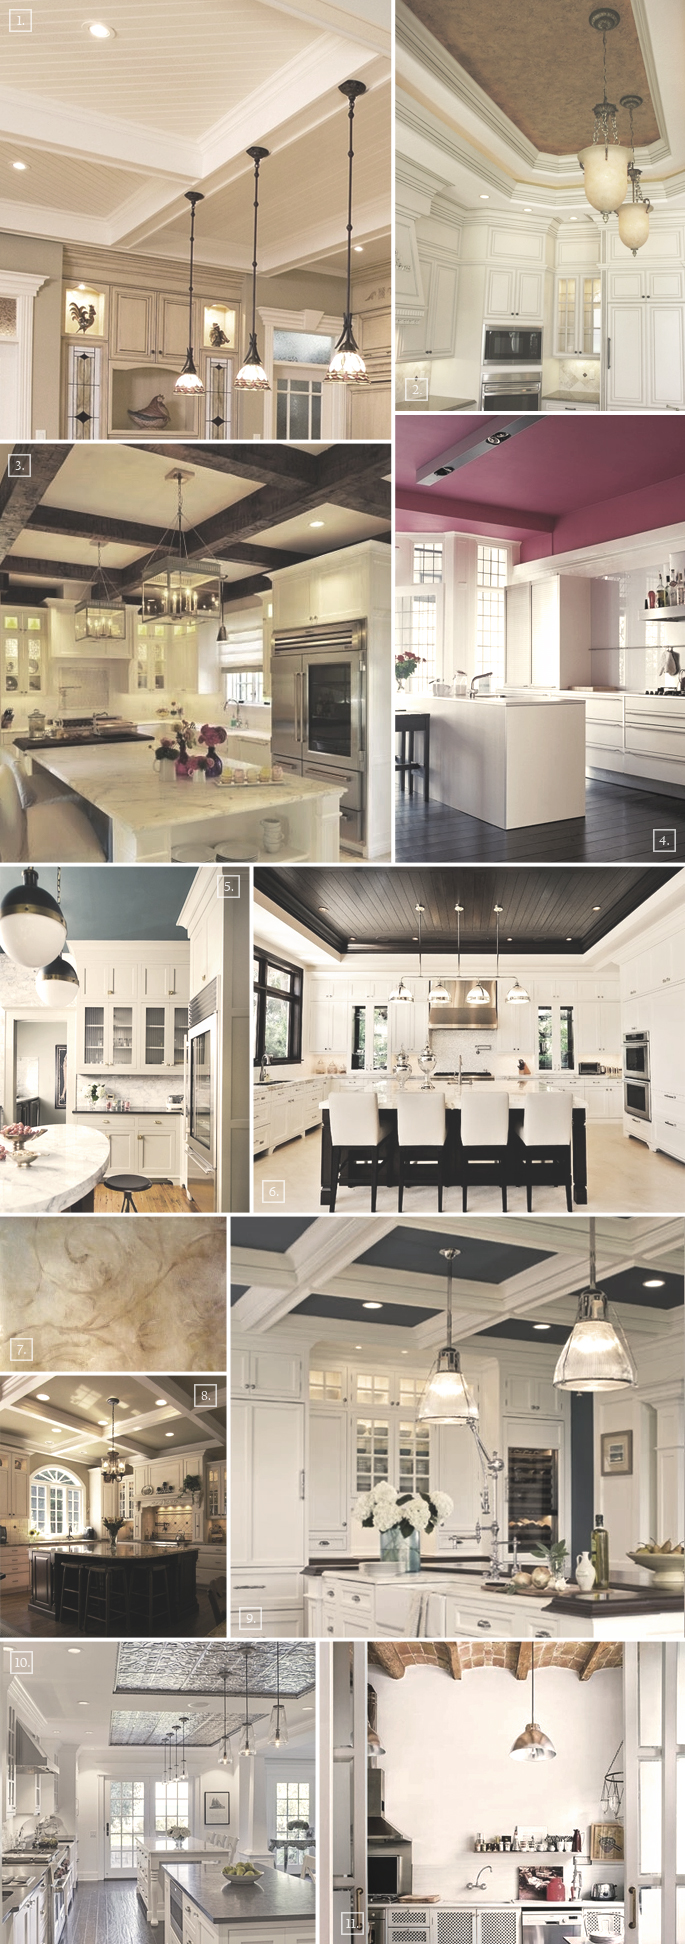 few ideas to get you inspired on what to do with your kitchen ceiling